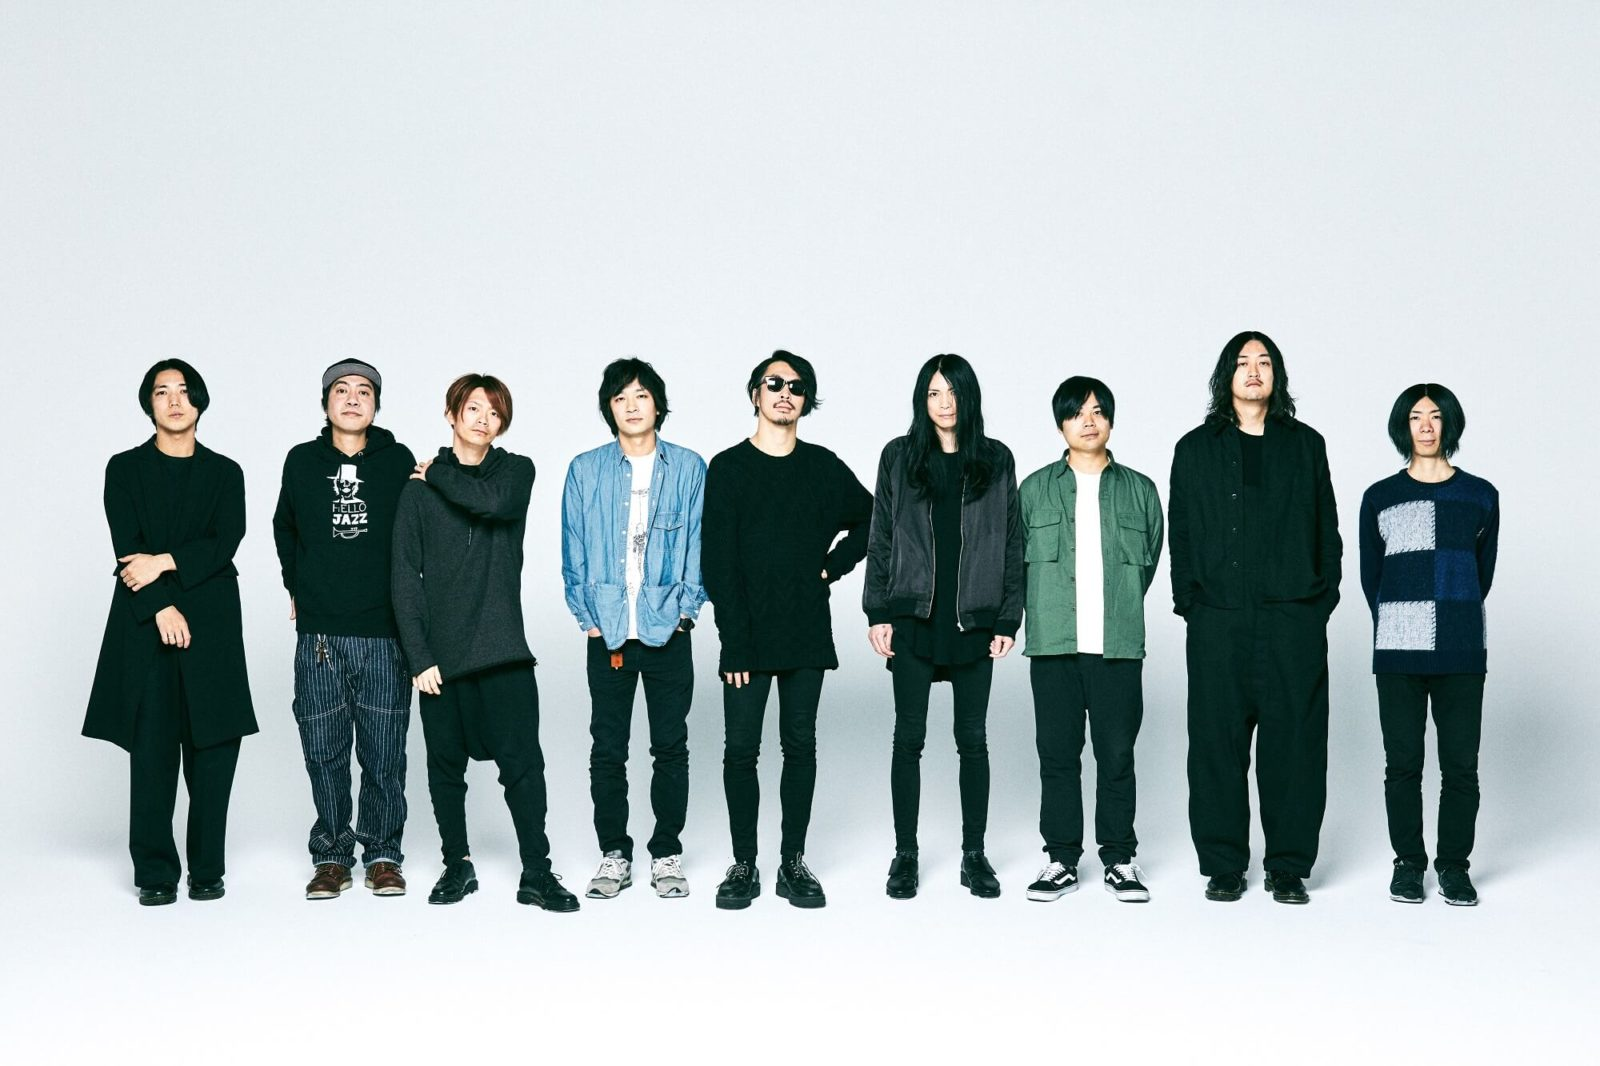 tacica、THE NOVEMBERS、People In The Box、盟友3バンド合同イベントツアー「TOMOE 2019」7年半ぶり開催決定サムネイル画像